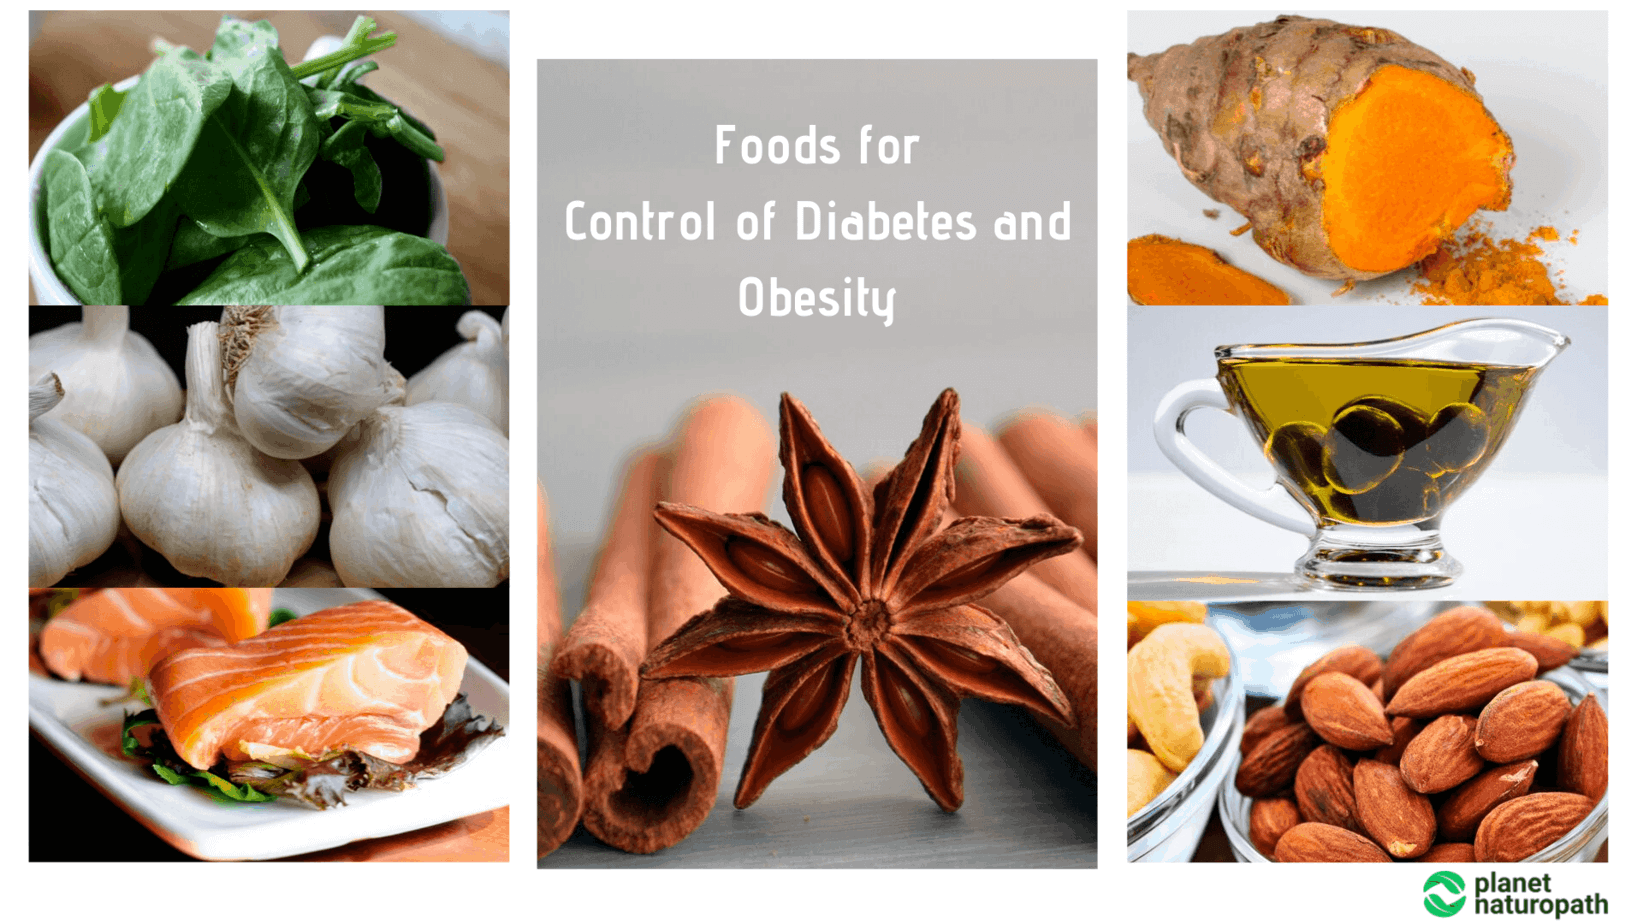 Foods-for-Control-of-Diabetes-and-Obesity